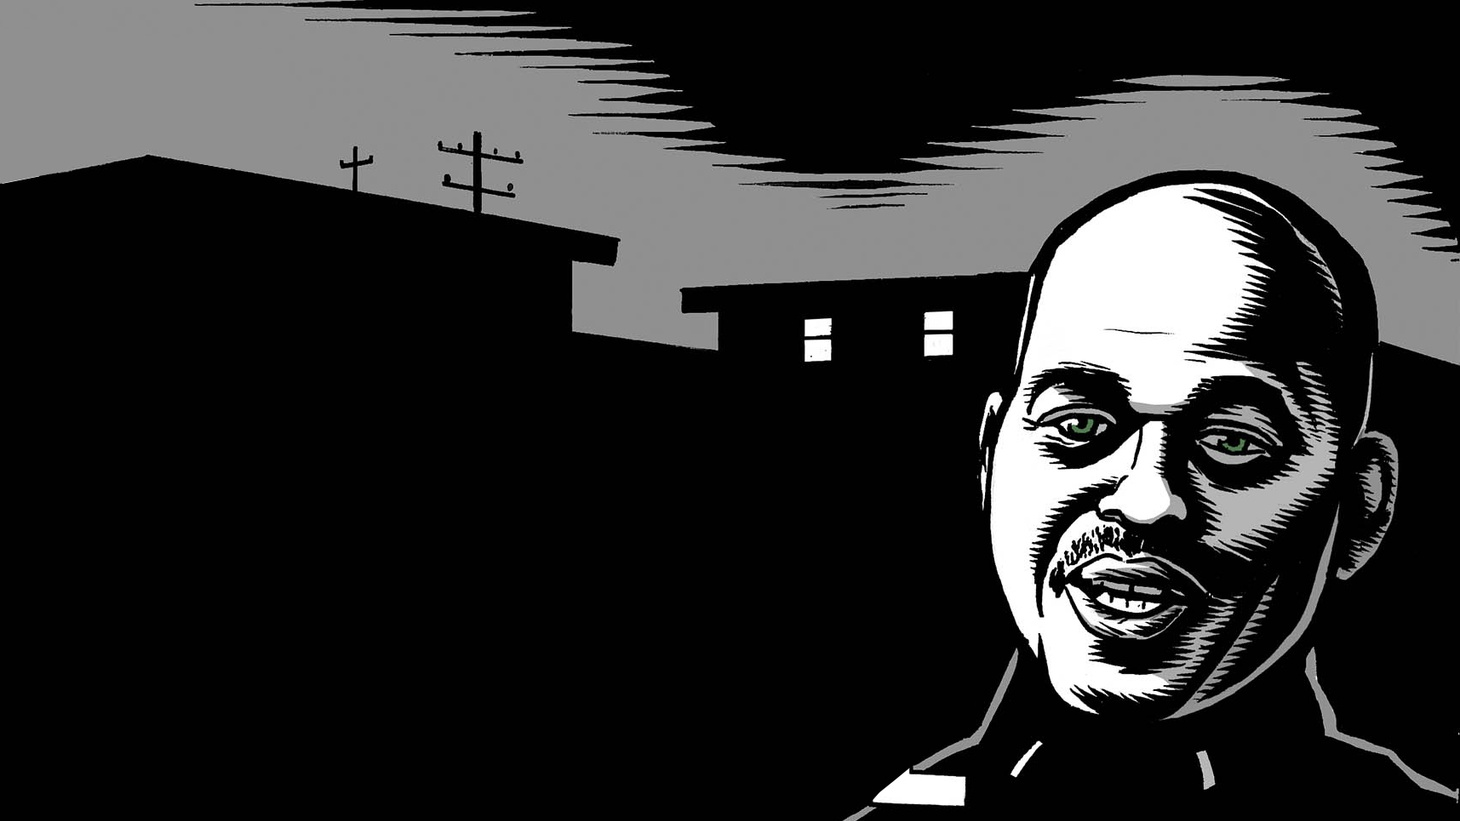 As a black kid growing up in South LA, Lt. Michael Carodine was regularly mistreated by police. But for Lt. Carodine, bad policing was a problem that could be solved; and he would help solve it.